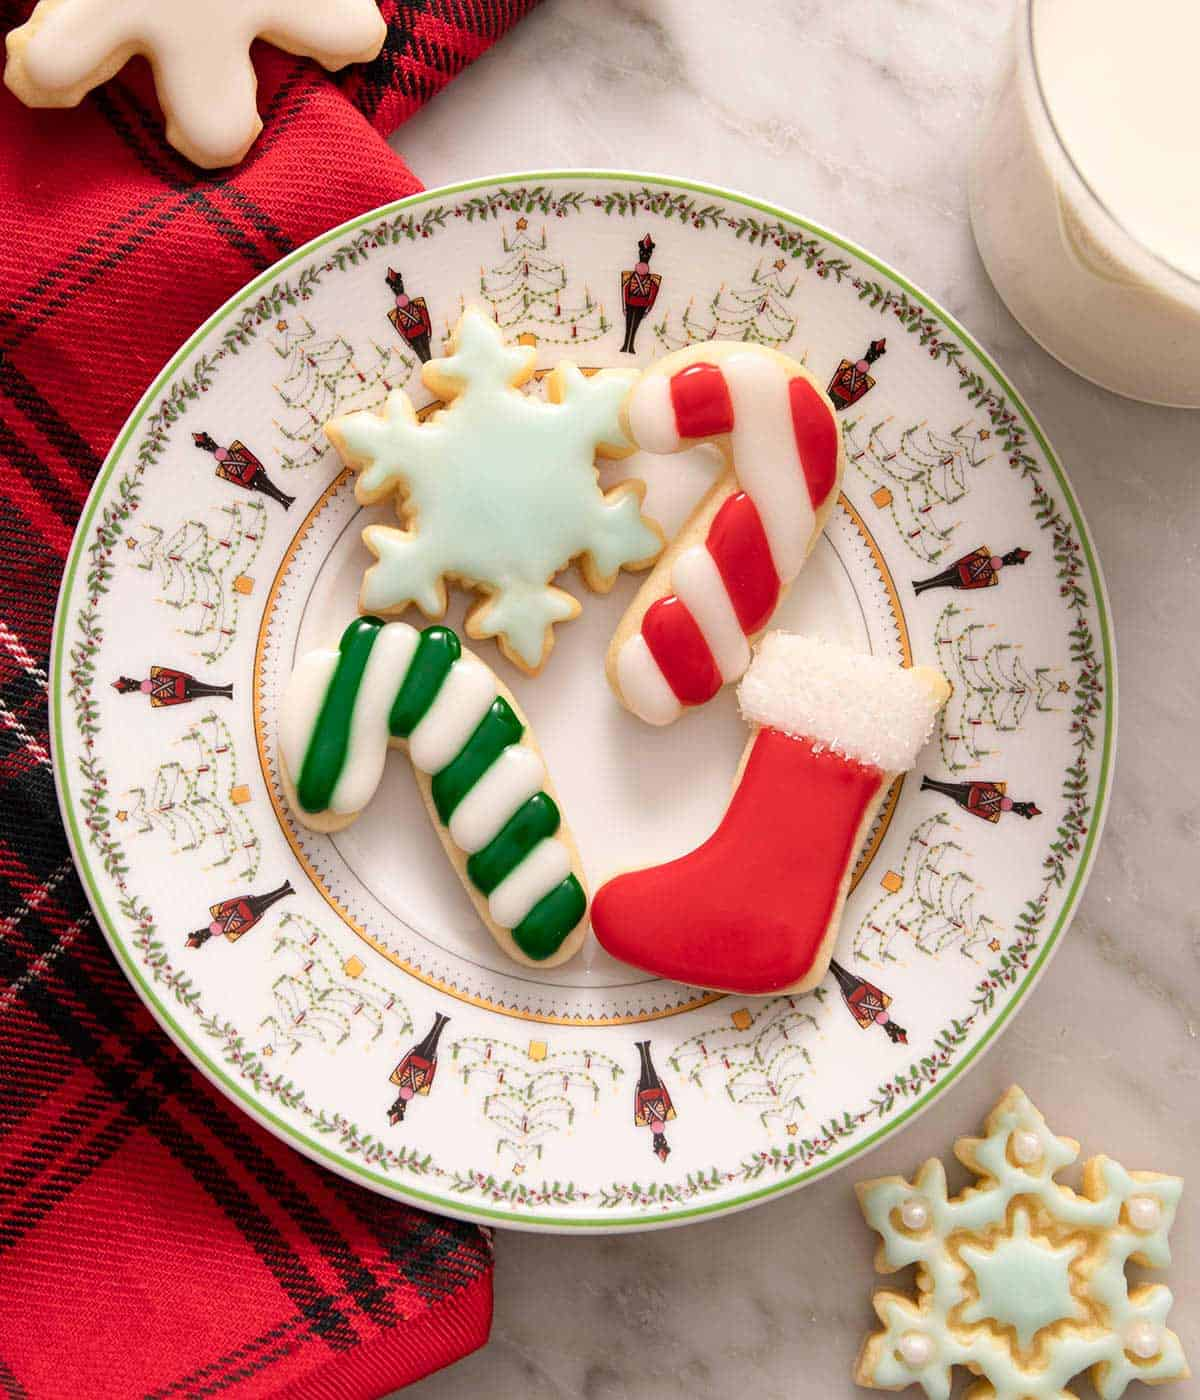 An overhead shot of a plate of Christmas sugar cookies with colored icing